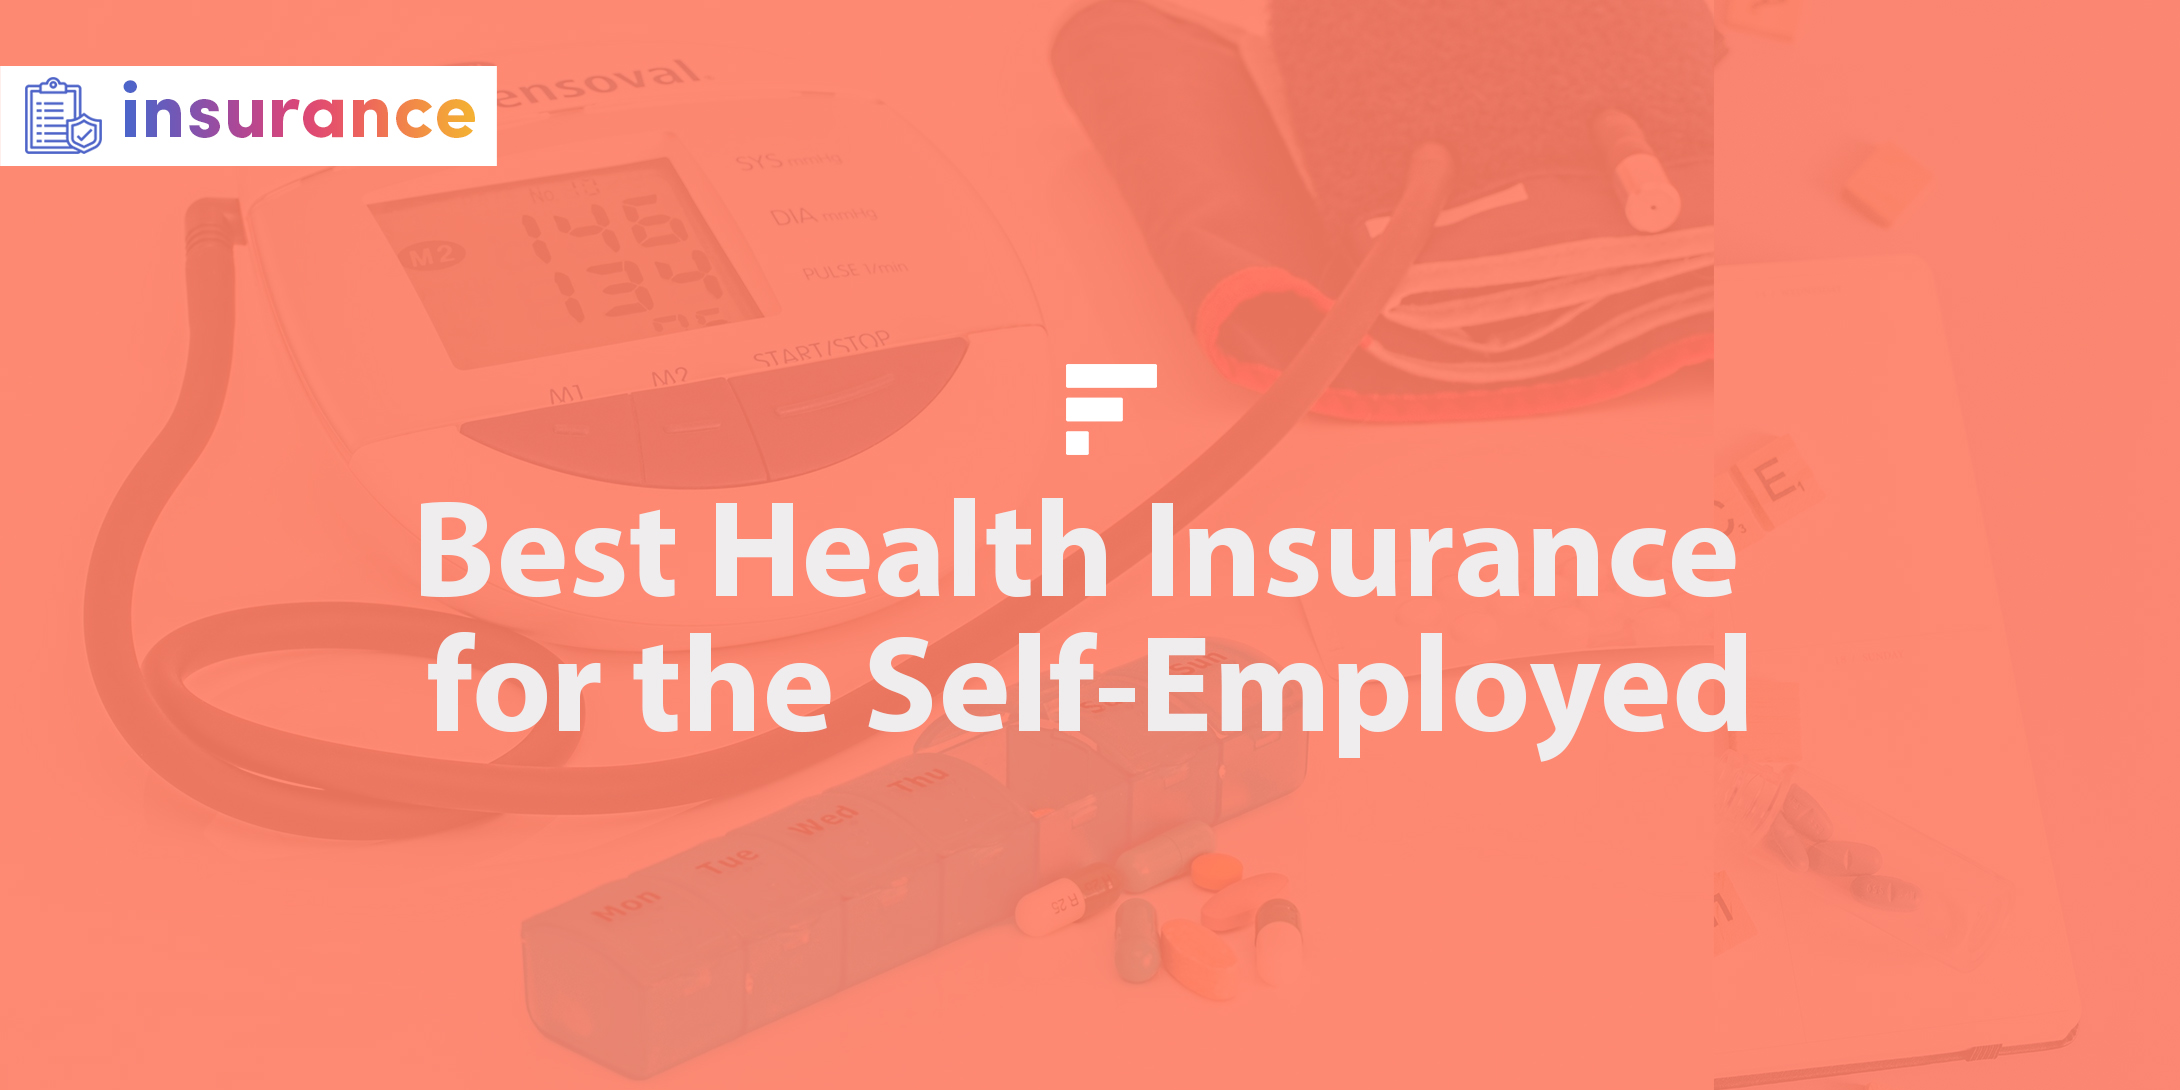 Best health insurance for the self-employed